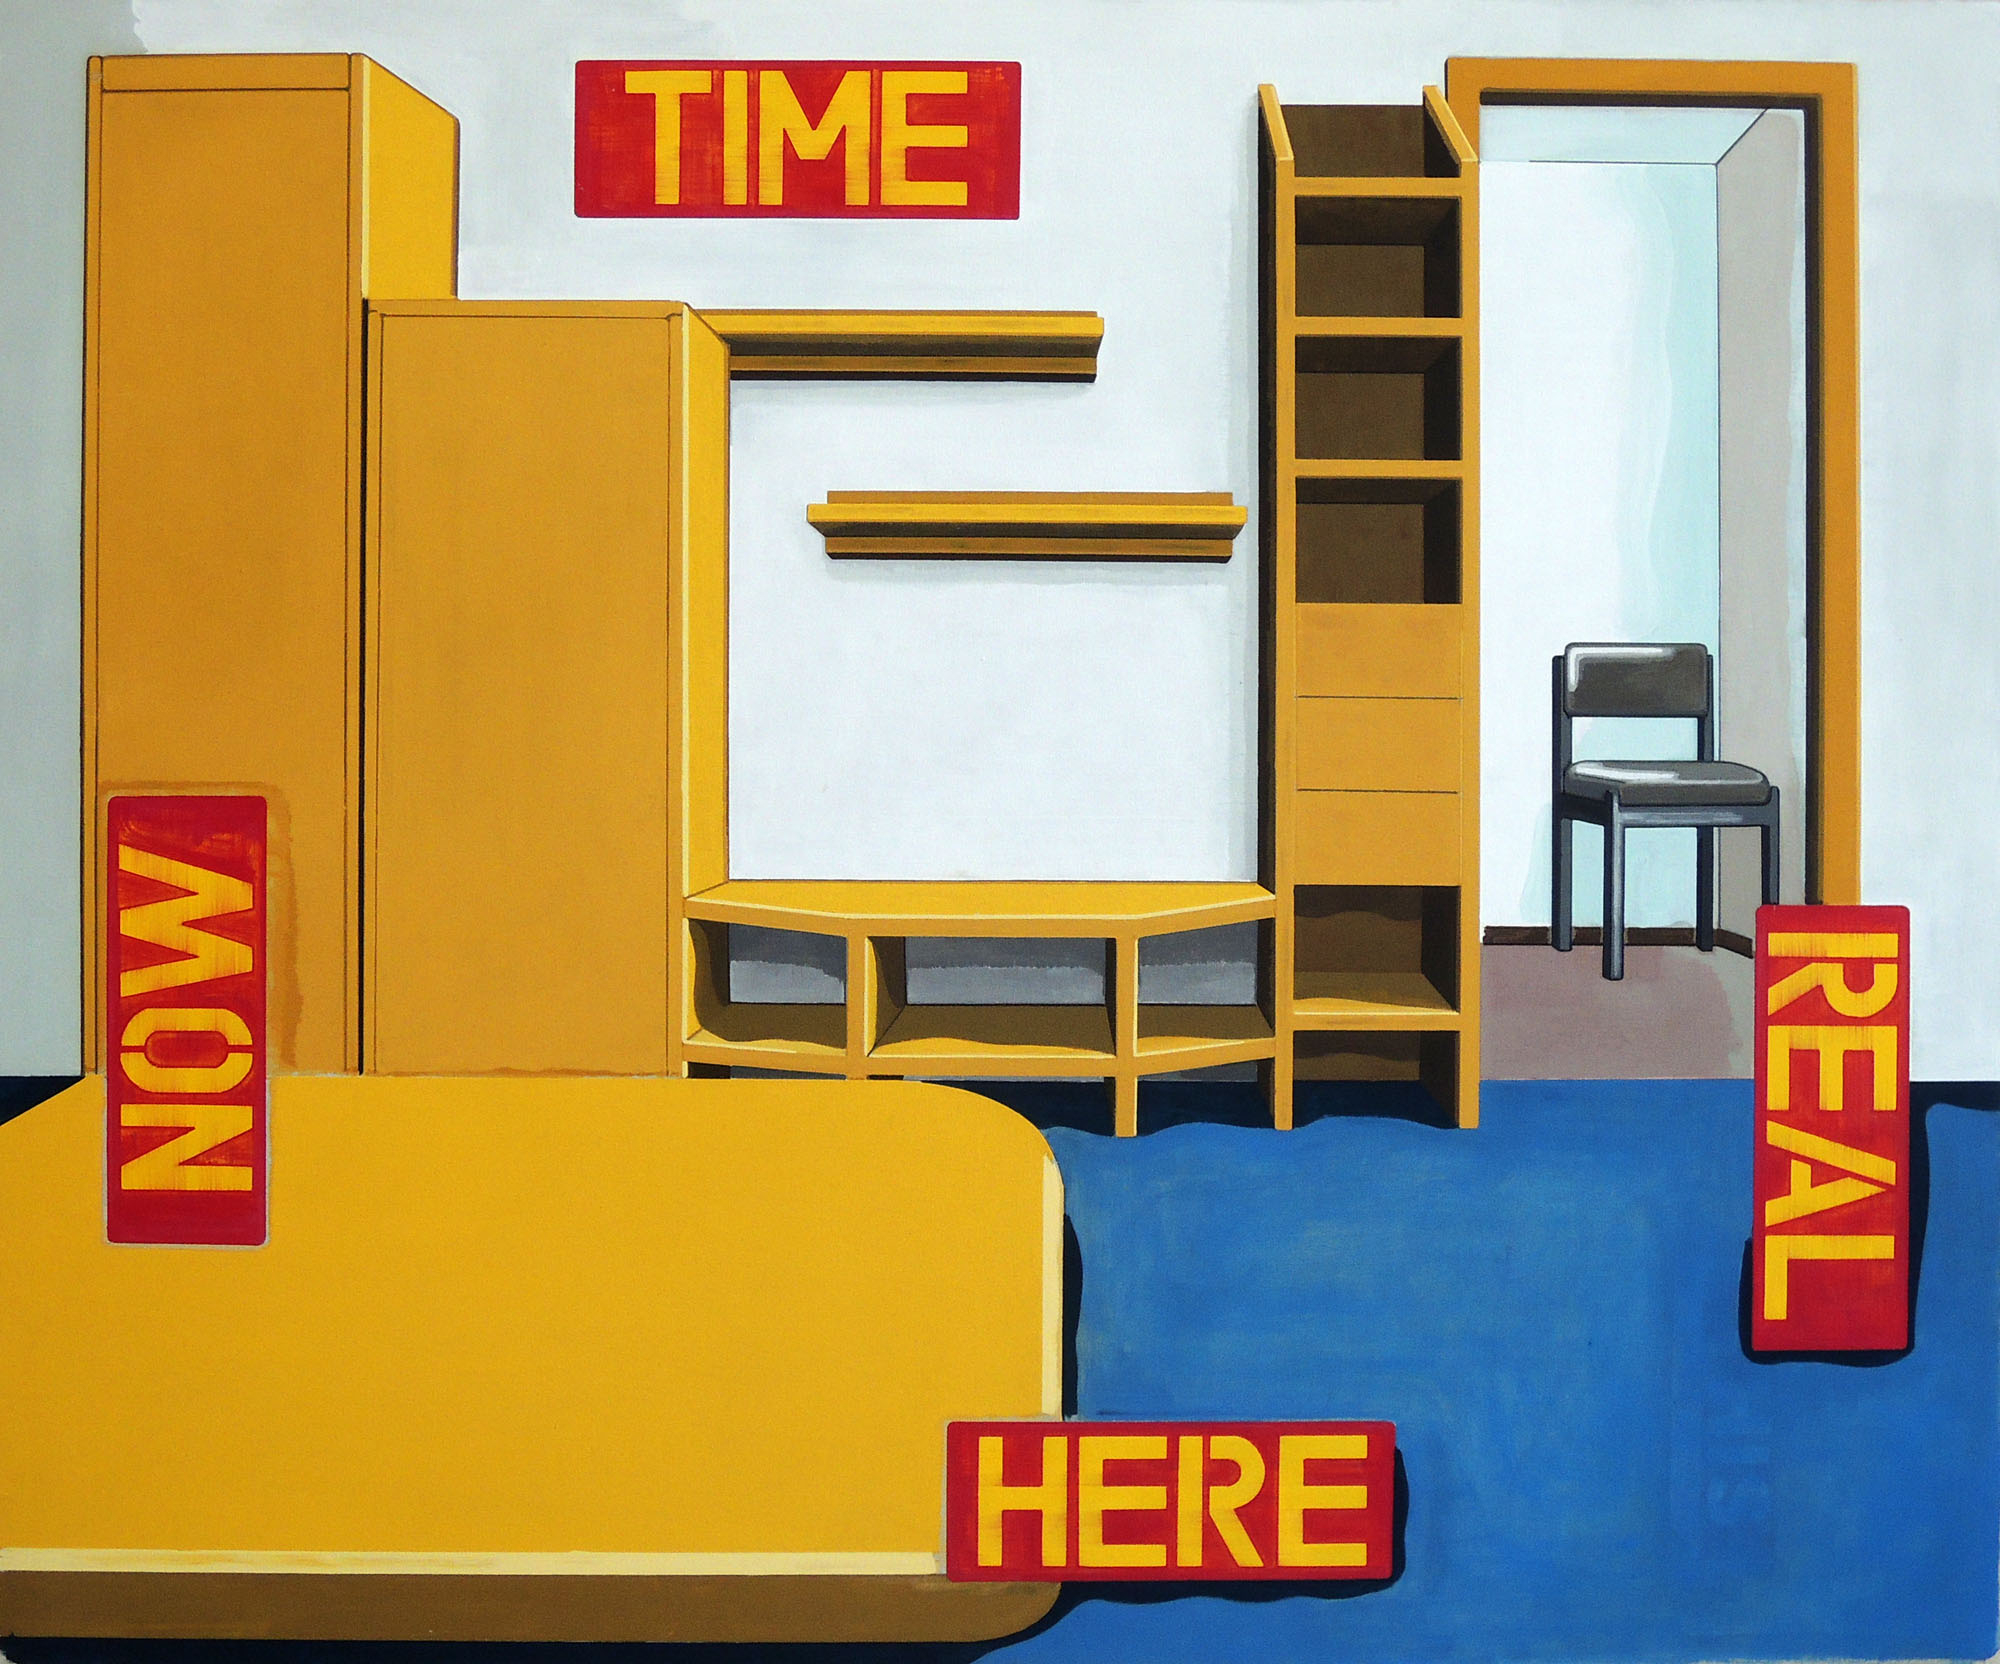 Situation Room, oil on canvas, 144 x 173 cm, 2015